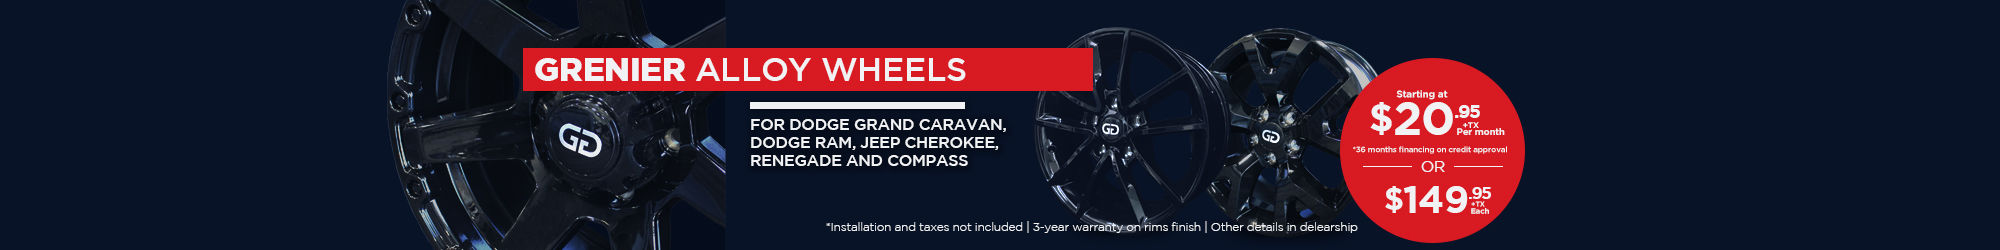 GRENIER alloy wheels - ALL